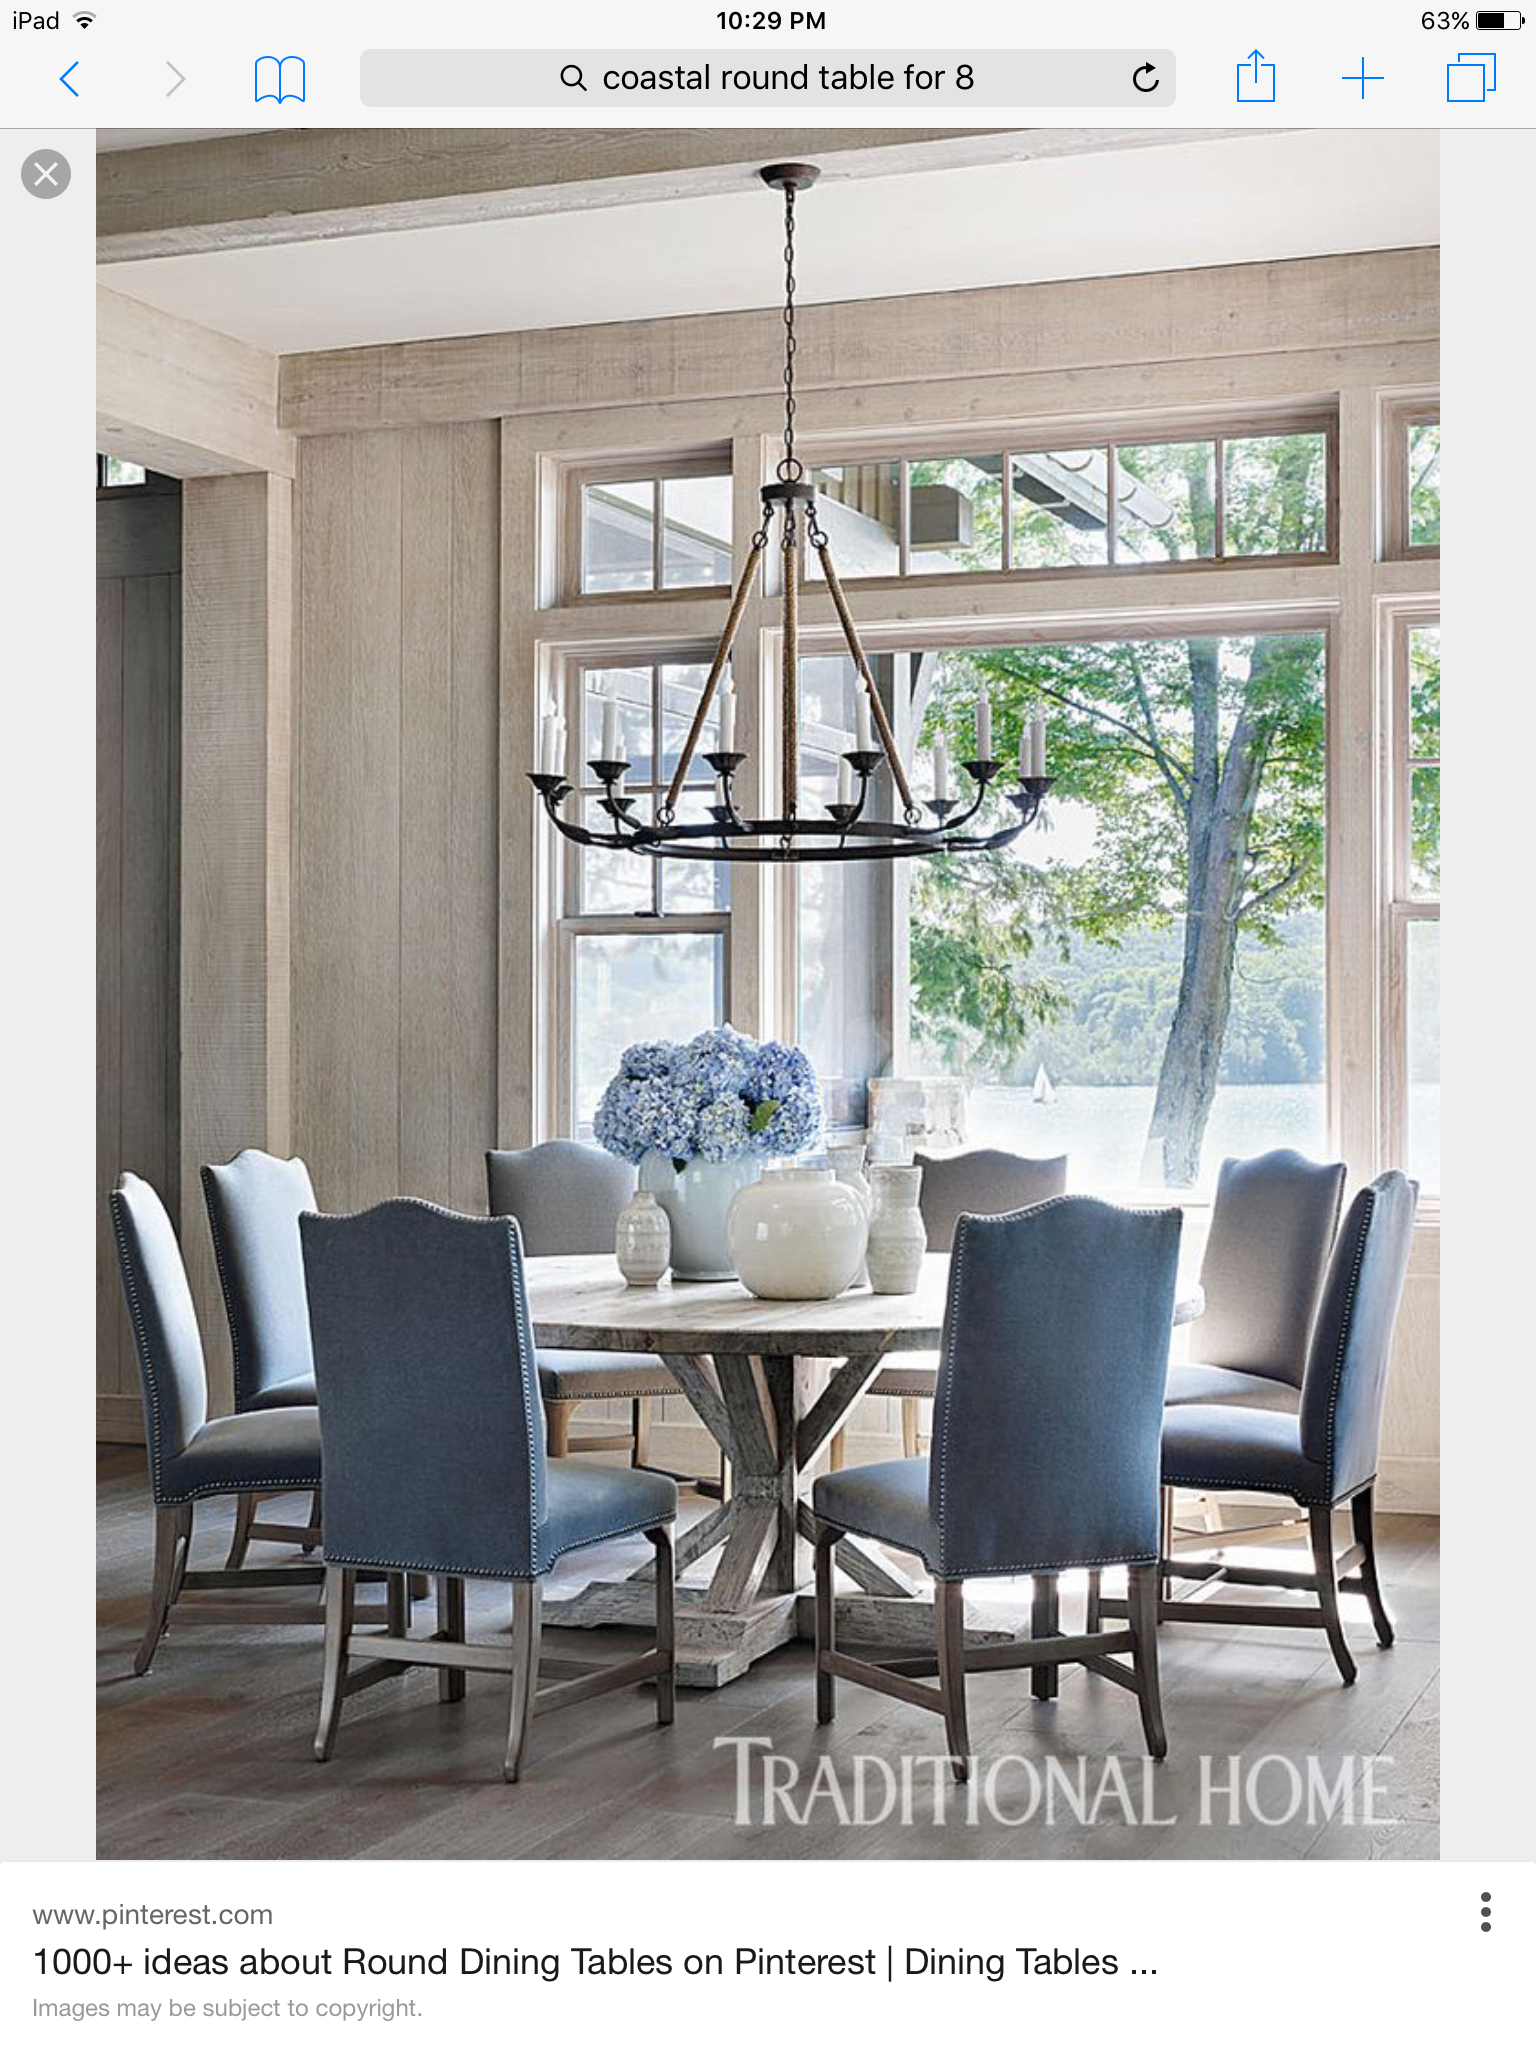 60 Round Table Seats 8 48 Seats 6 Love These Chair Colors French Country Dining Room Country Dining Rooms Beautiful Dining Rooms